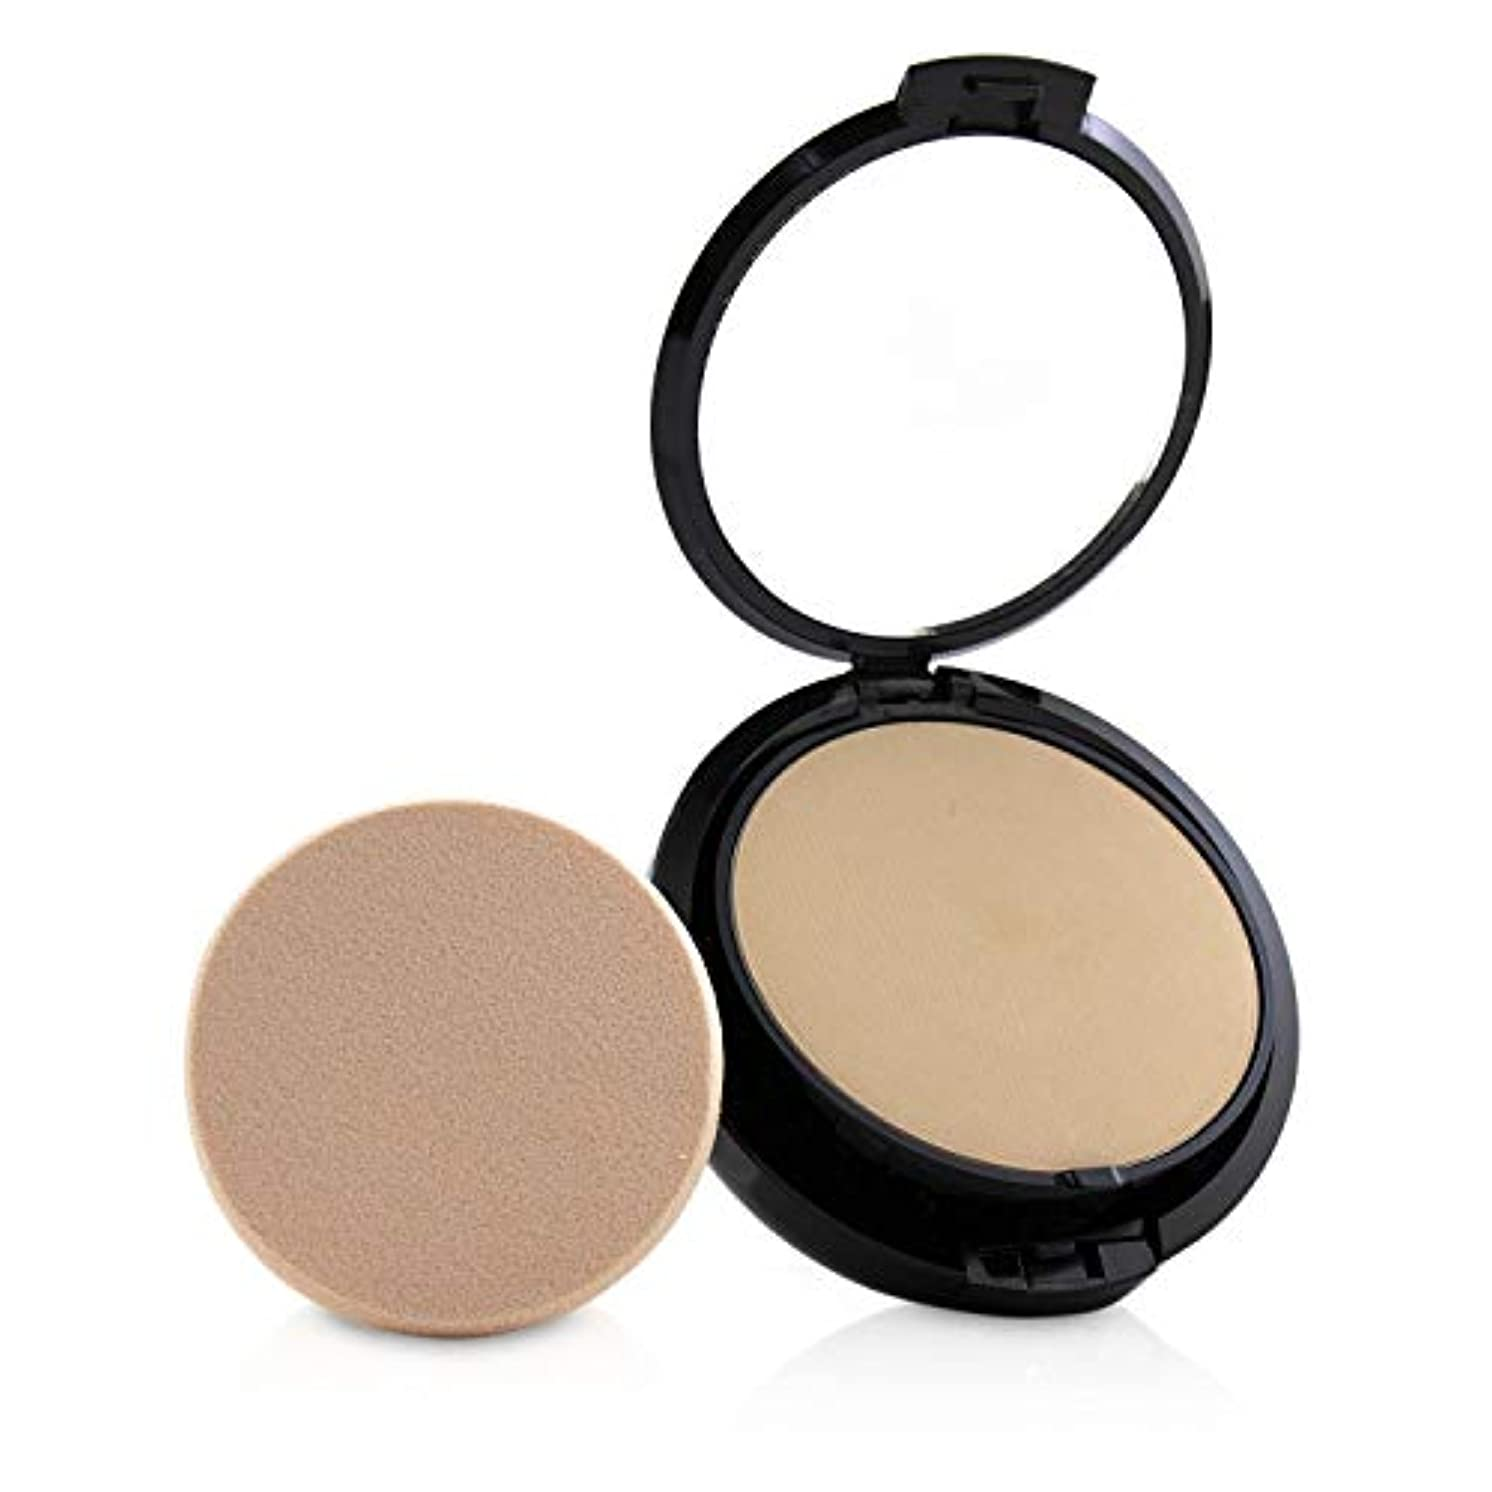 全体コールド原告SCOUT Cosmetics Pressed Mineral Powder Foundation SPF 15 - # Shell 15g/0.53oz並行輸入品